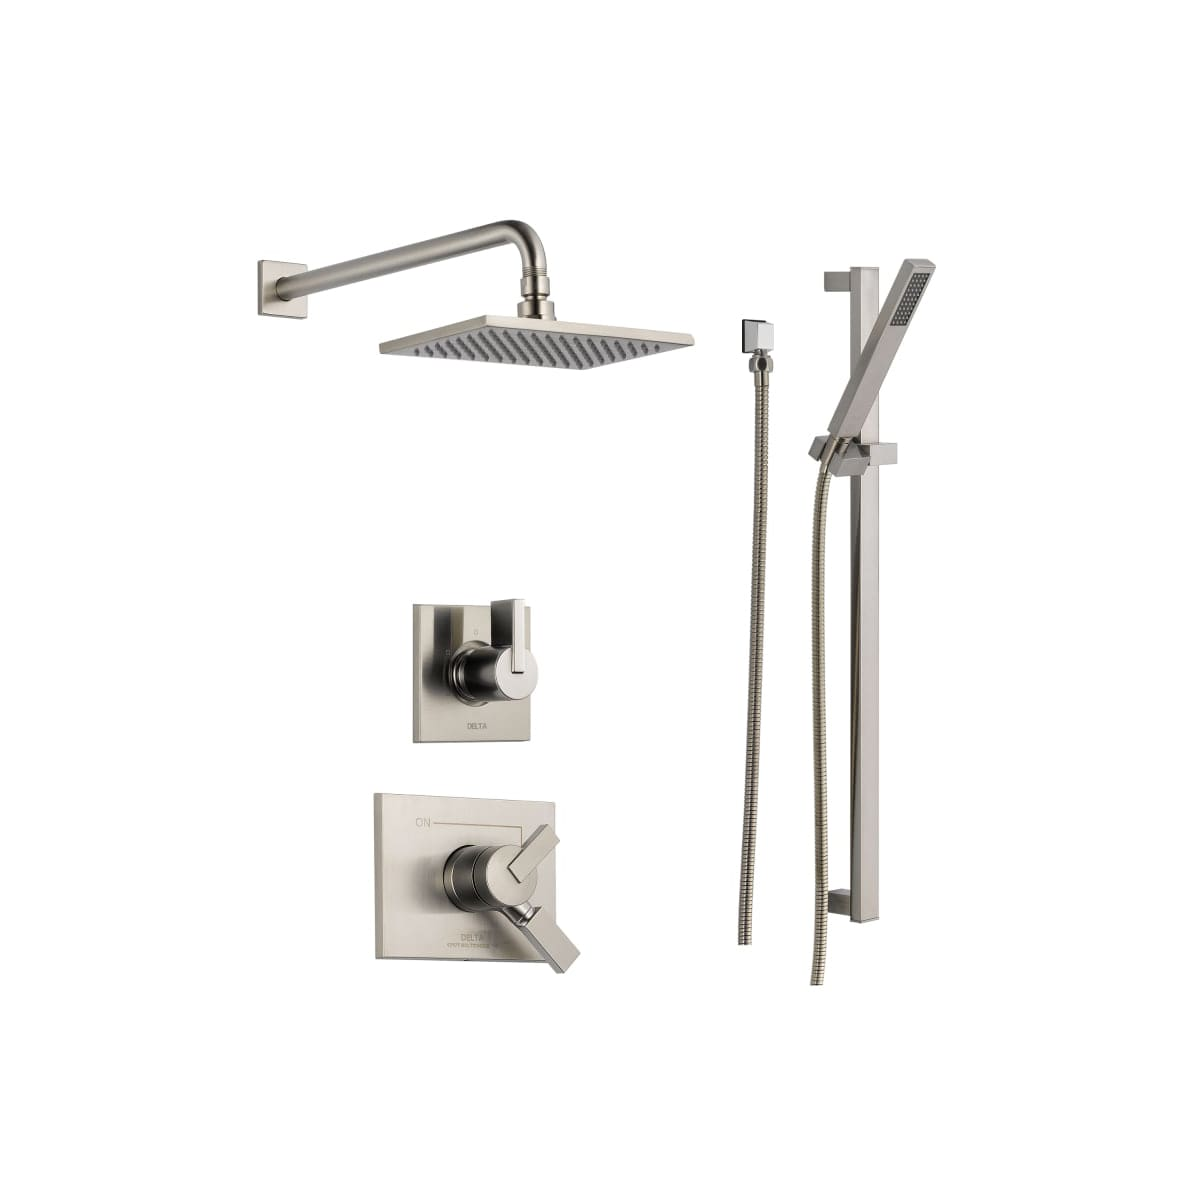 Delta Dss Vero 1701 Chrome Monitor 17 Series Dual Function Pressure How To Remove Single Valve Handle Shower Page 2 Balanced System With Integrated Volume Control Head And Hand